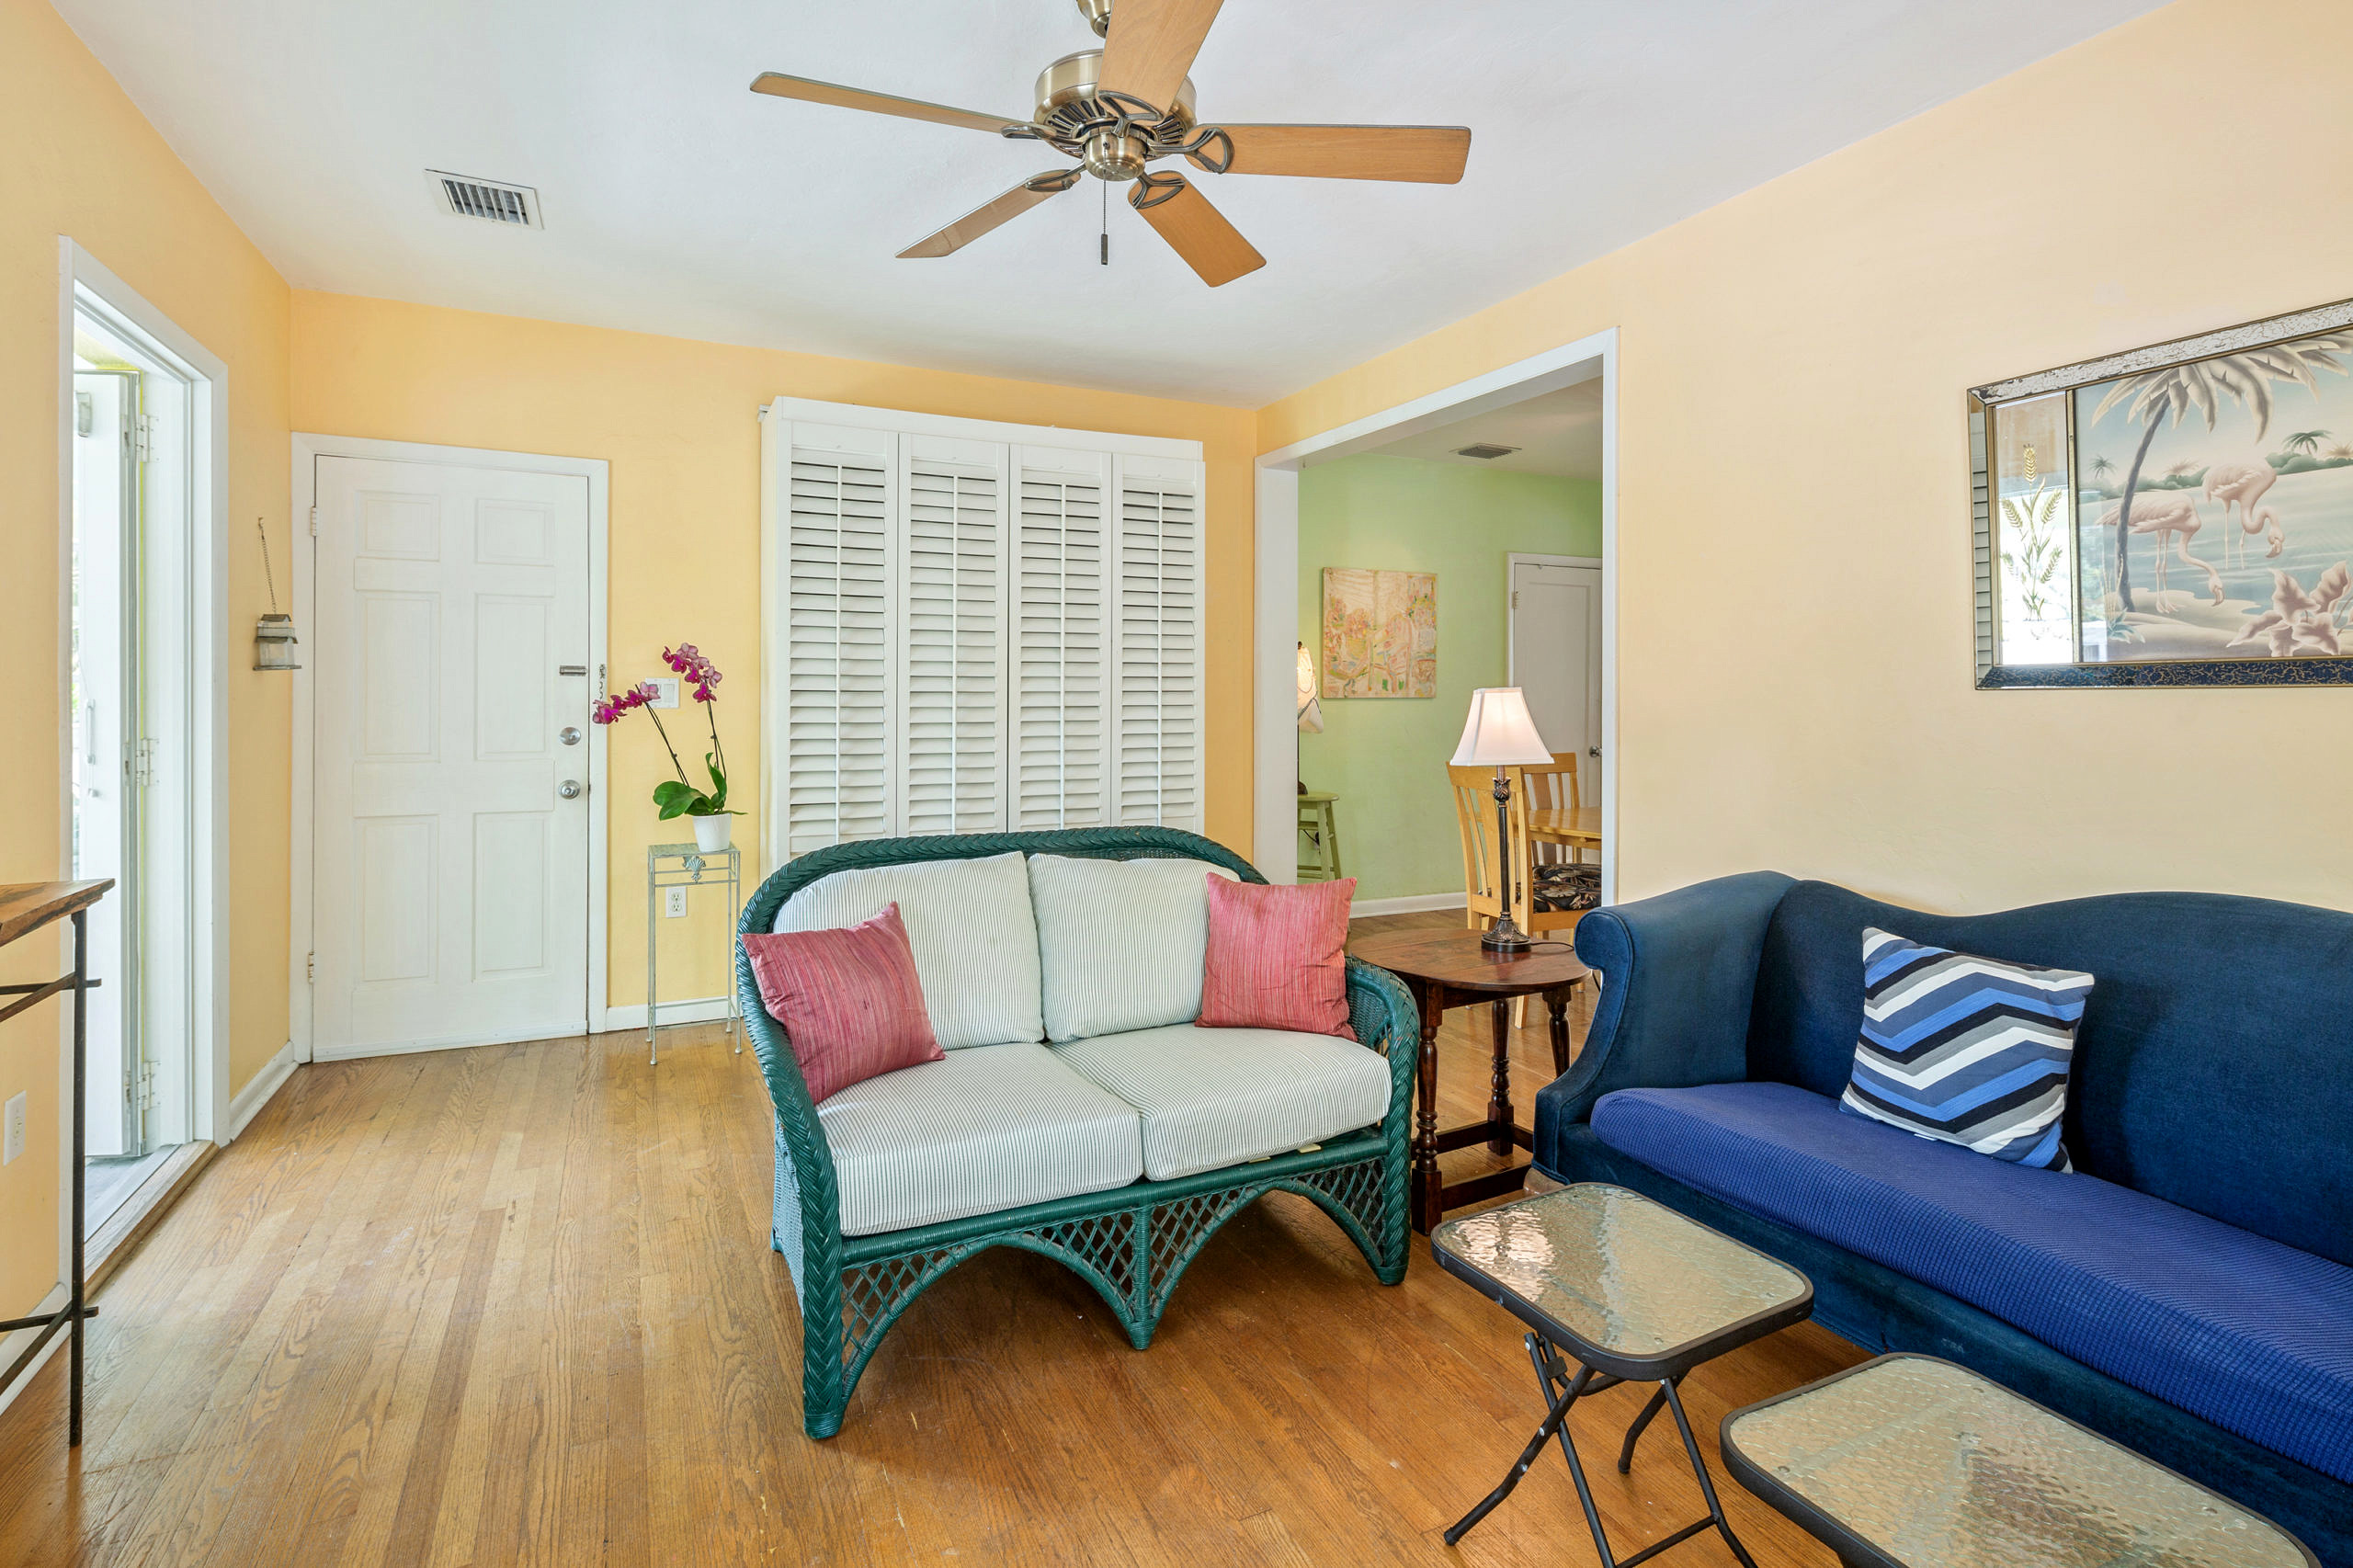 812 South St. #4, Key West_Living Room View 2